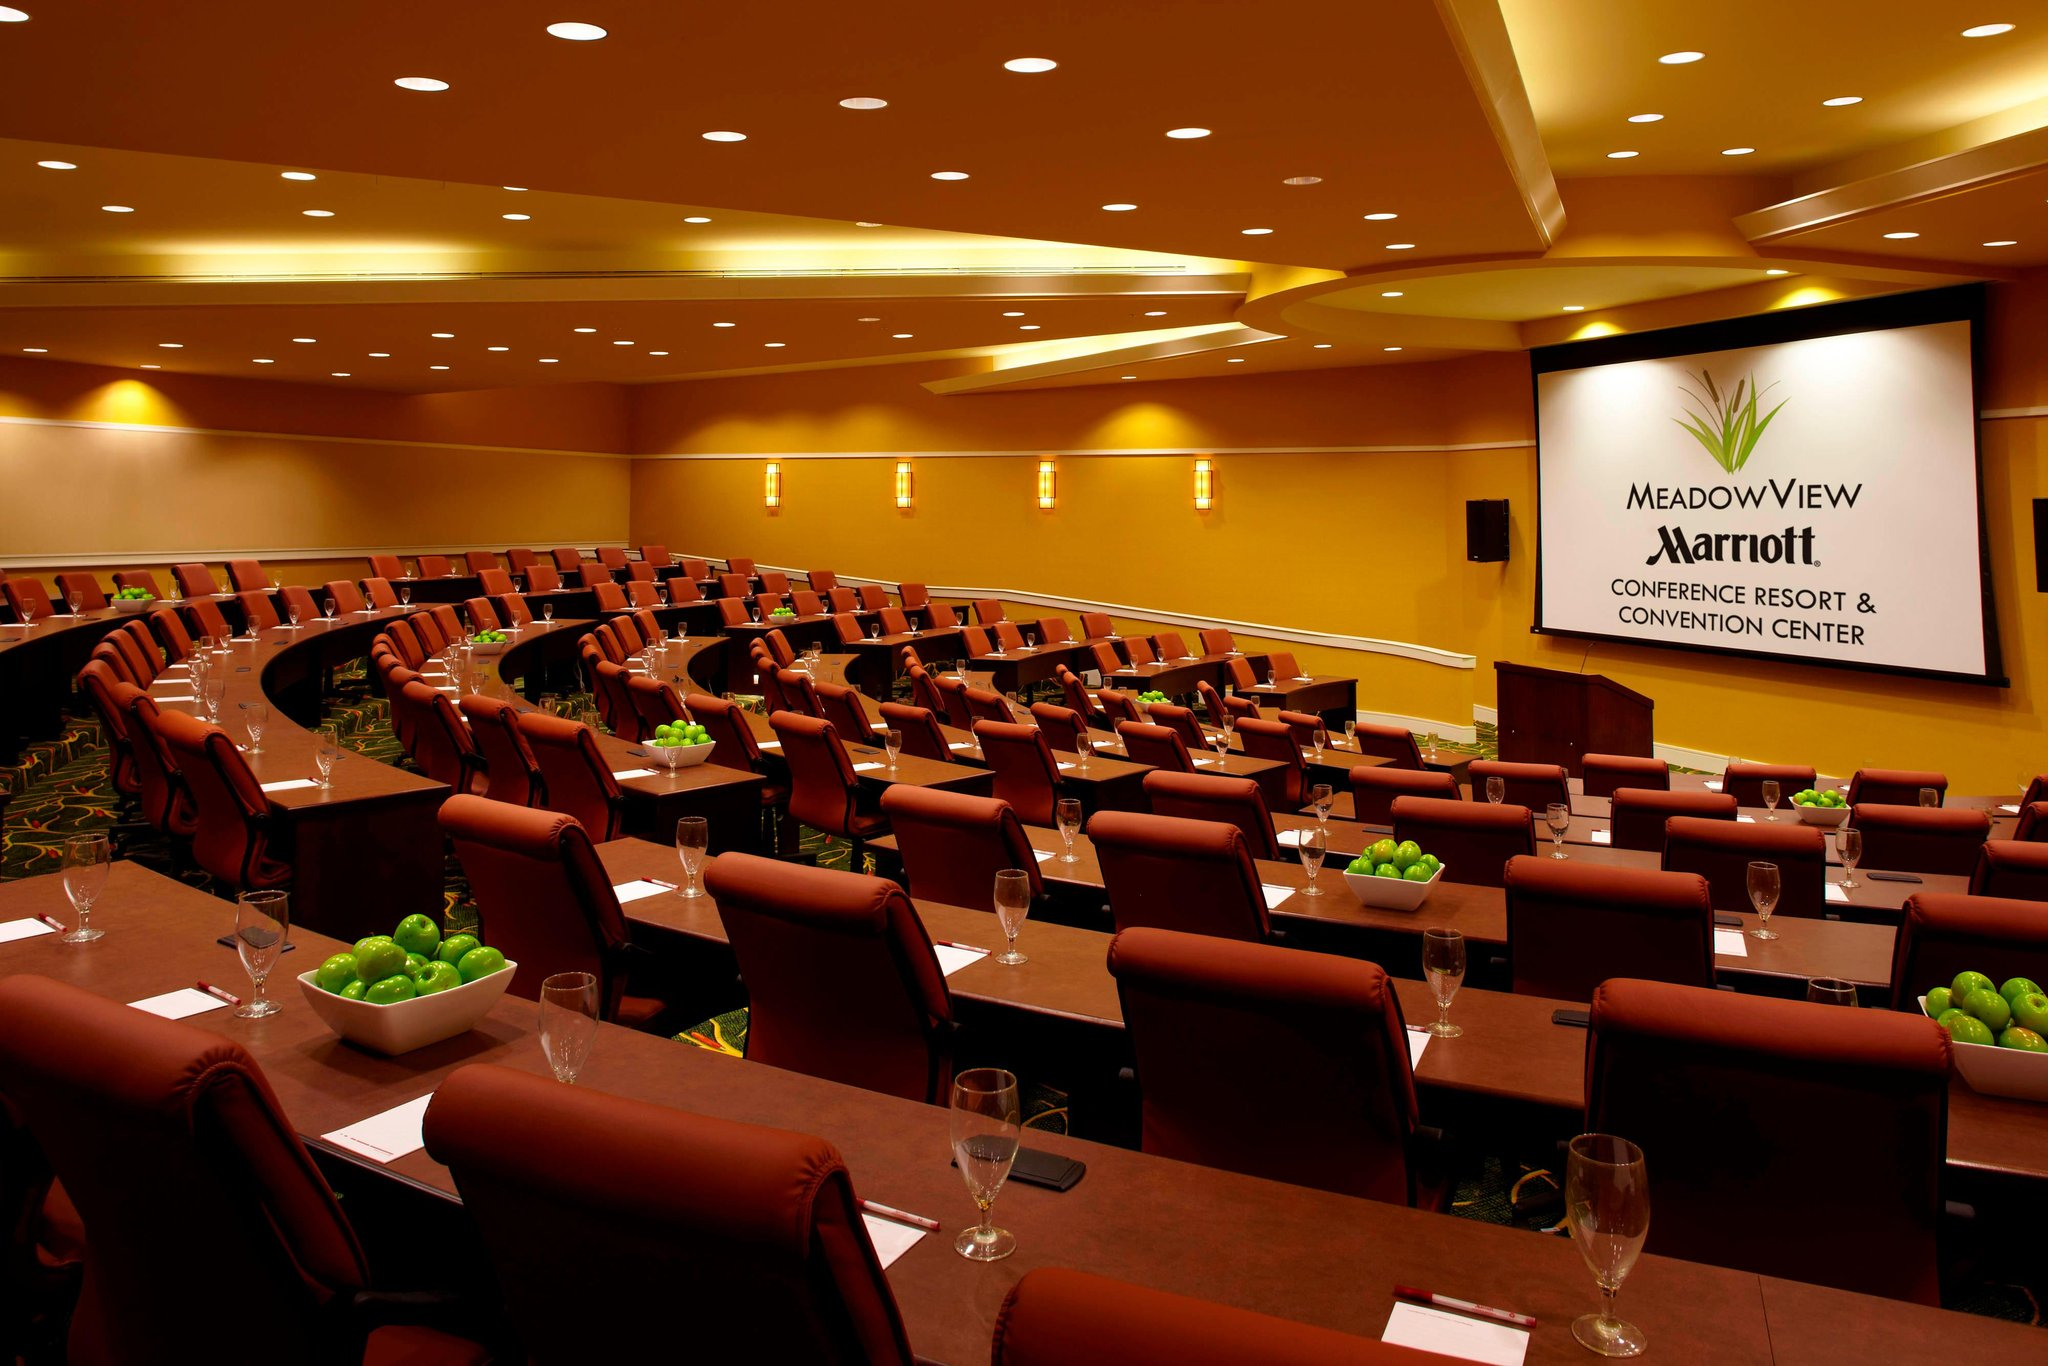 Meetings And Events At Meadowview Conference Resort With Regard To Meadowview Convention Center Events Calendar